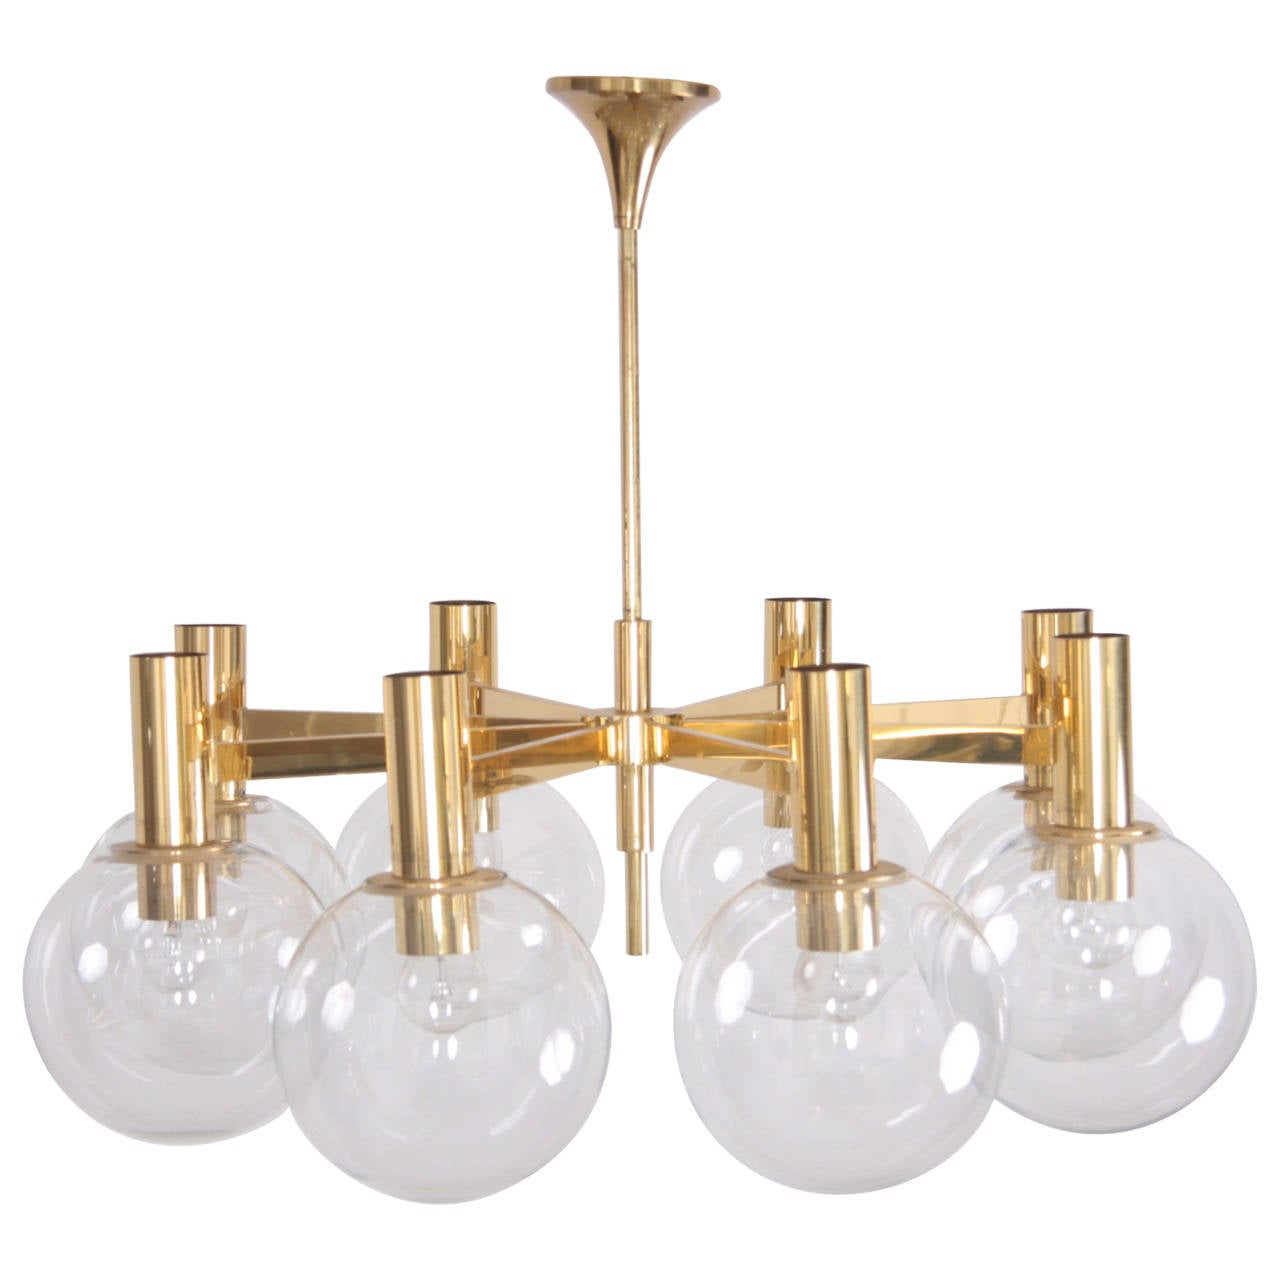 Extra Large Brass Chandelier with Eight Arms by Ott International For Sale